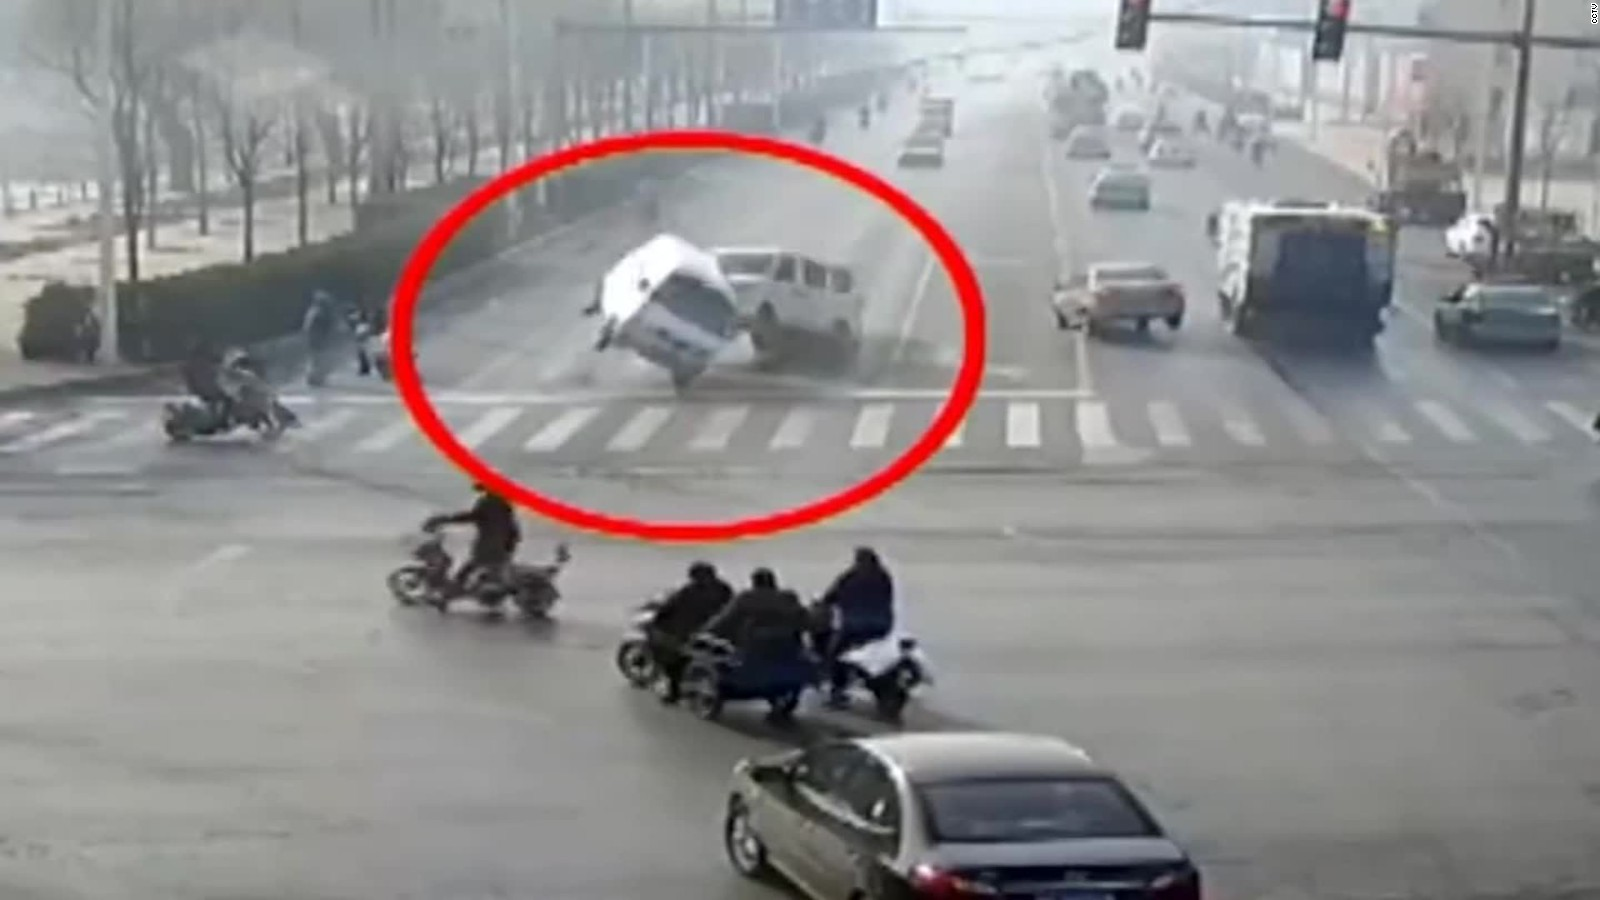 Mystery of China's levitating cars solved - CNN Video